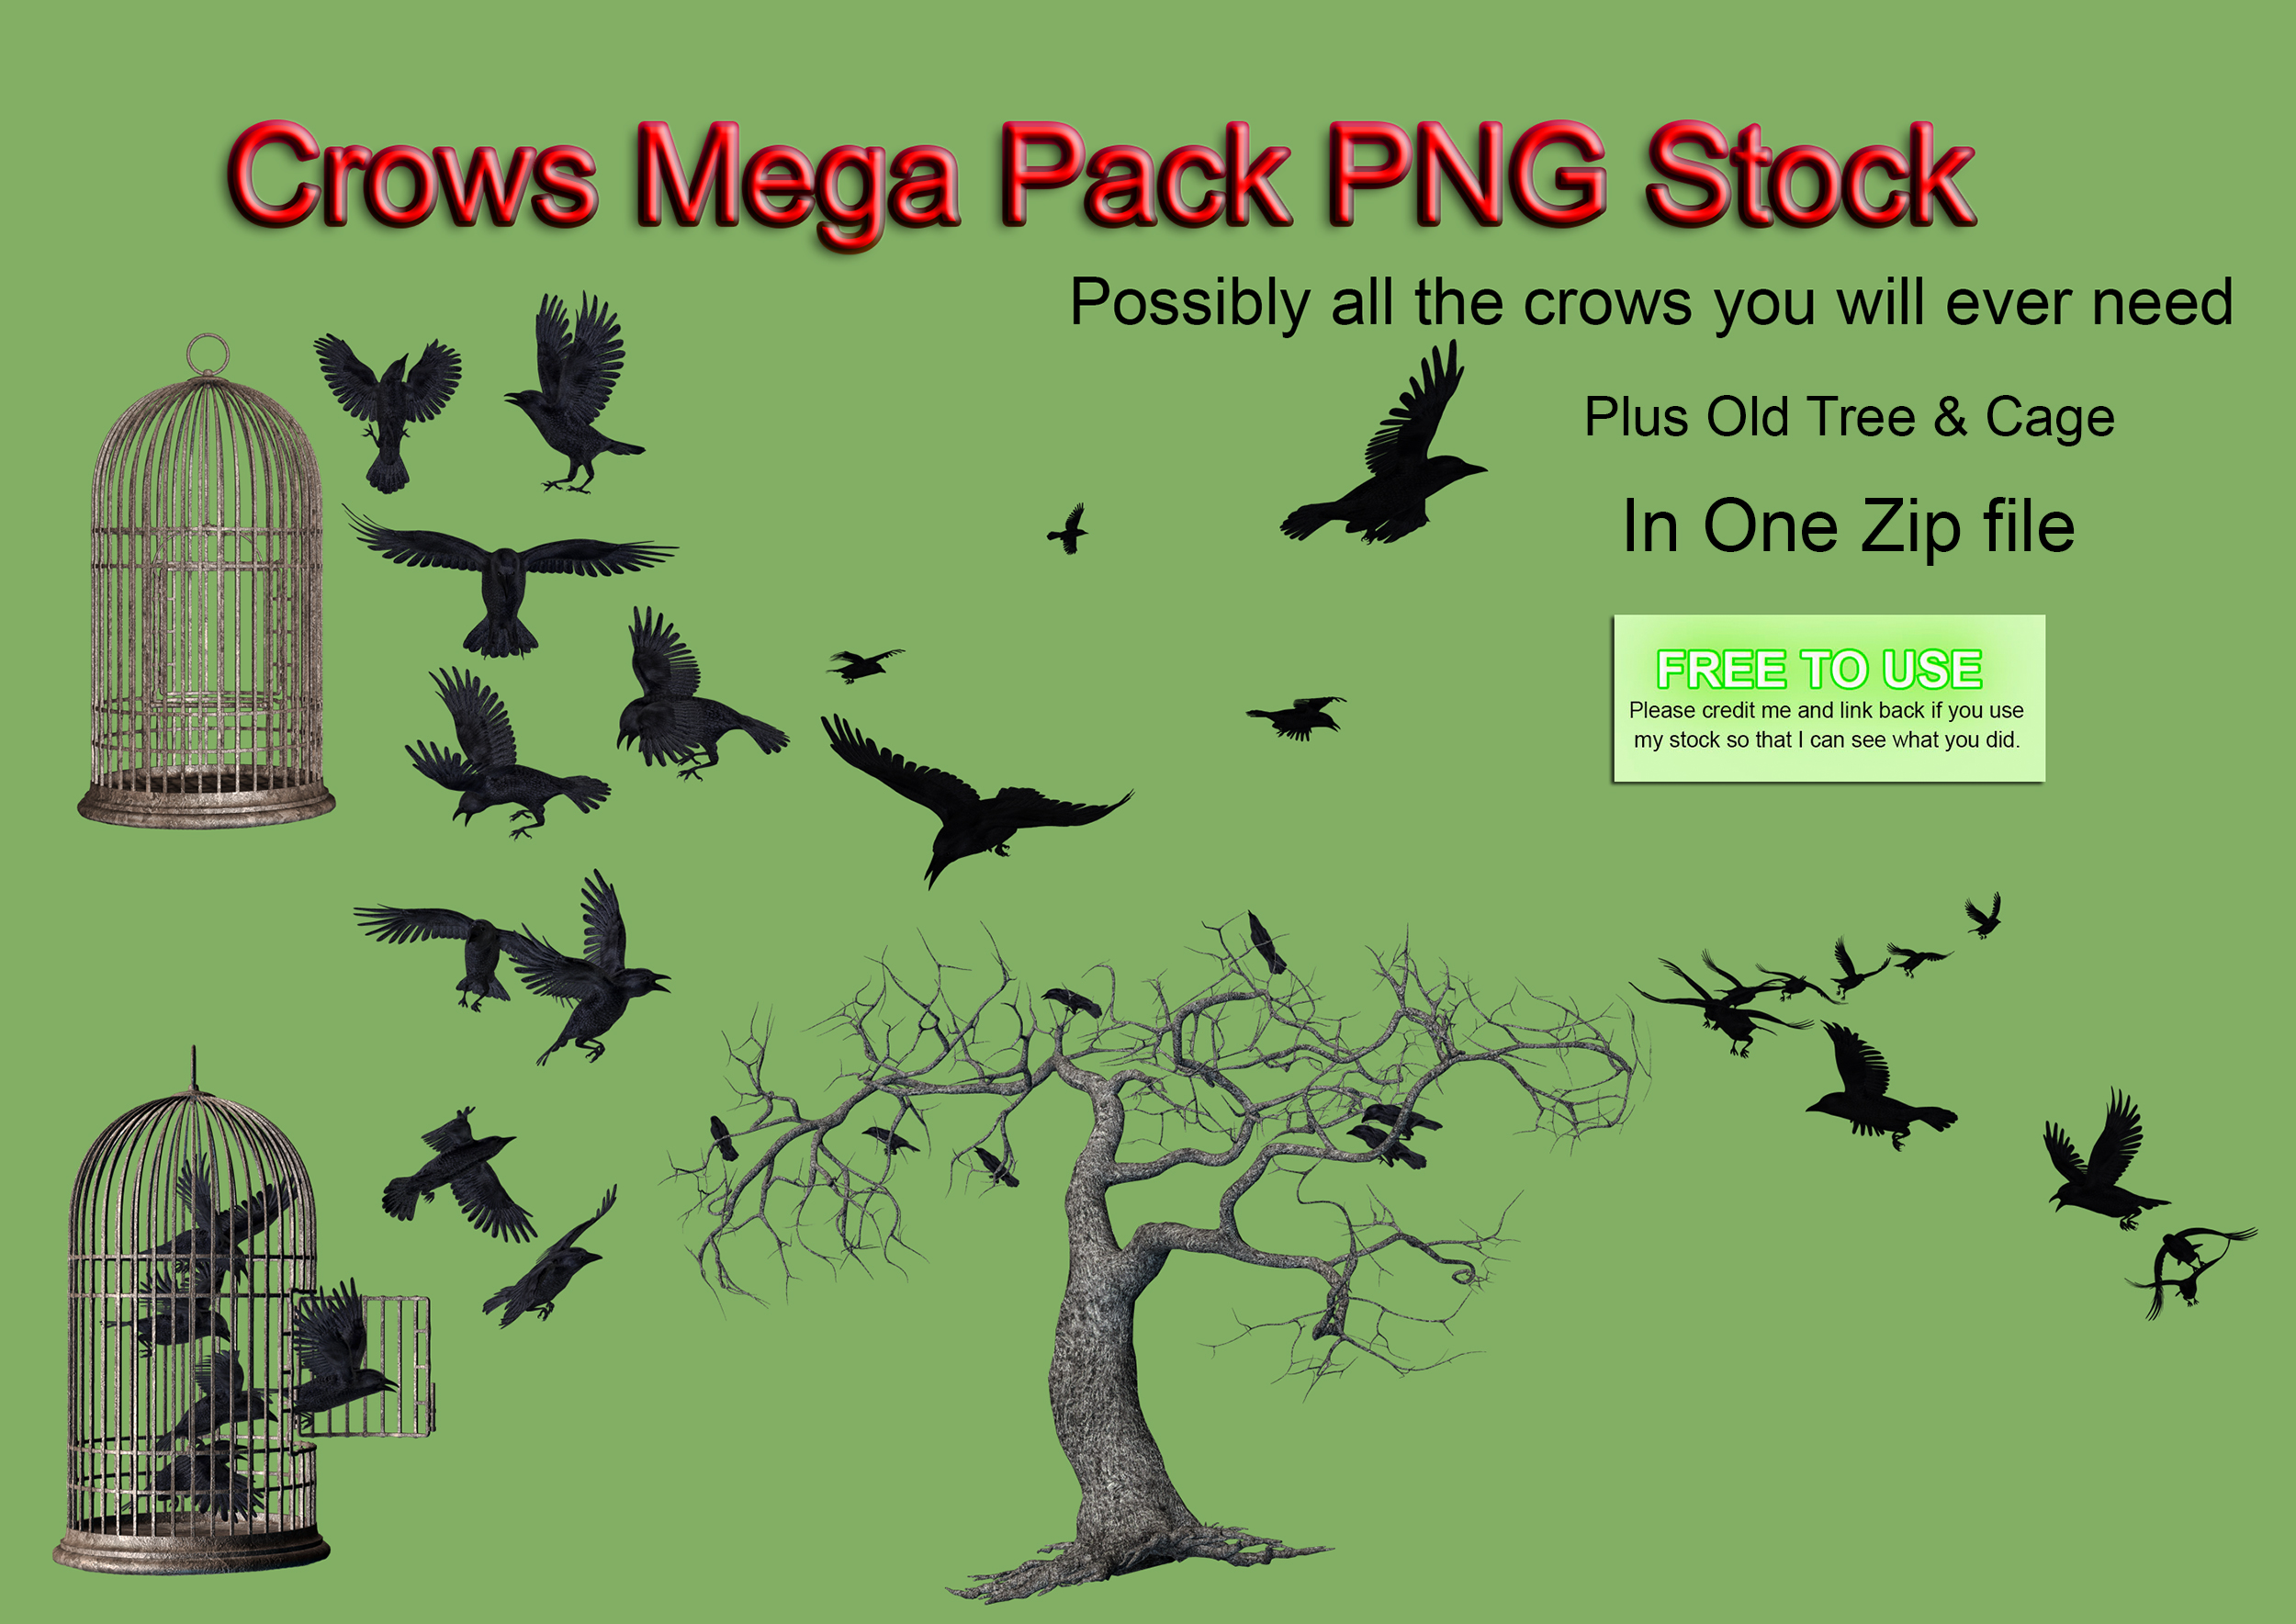 Crows Mega Pack PNG Stock by Roys-Art